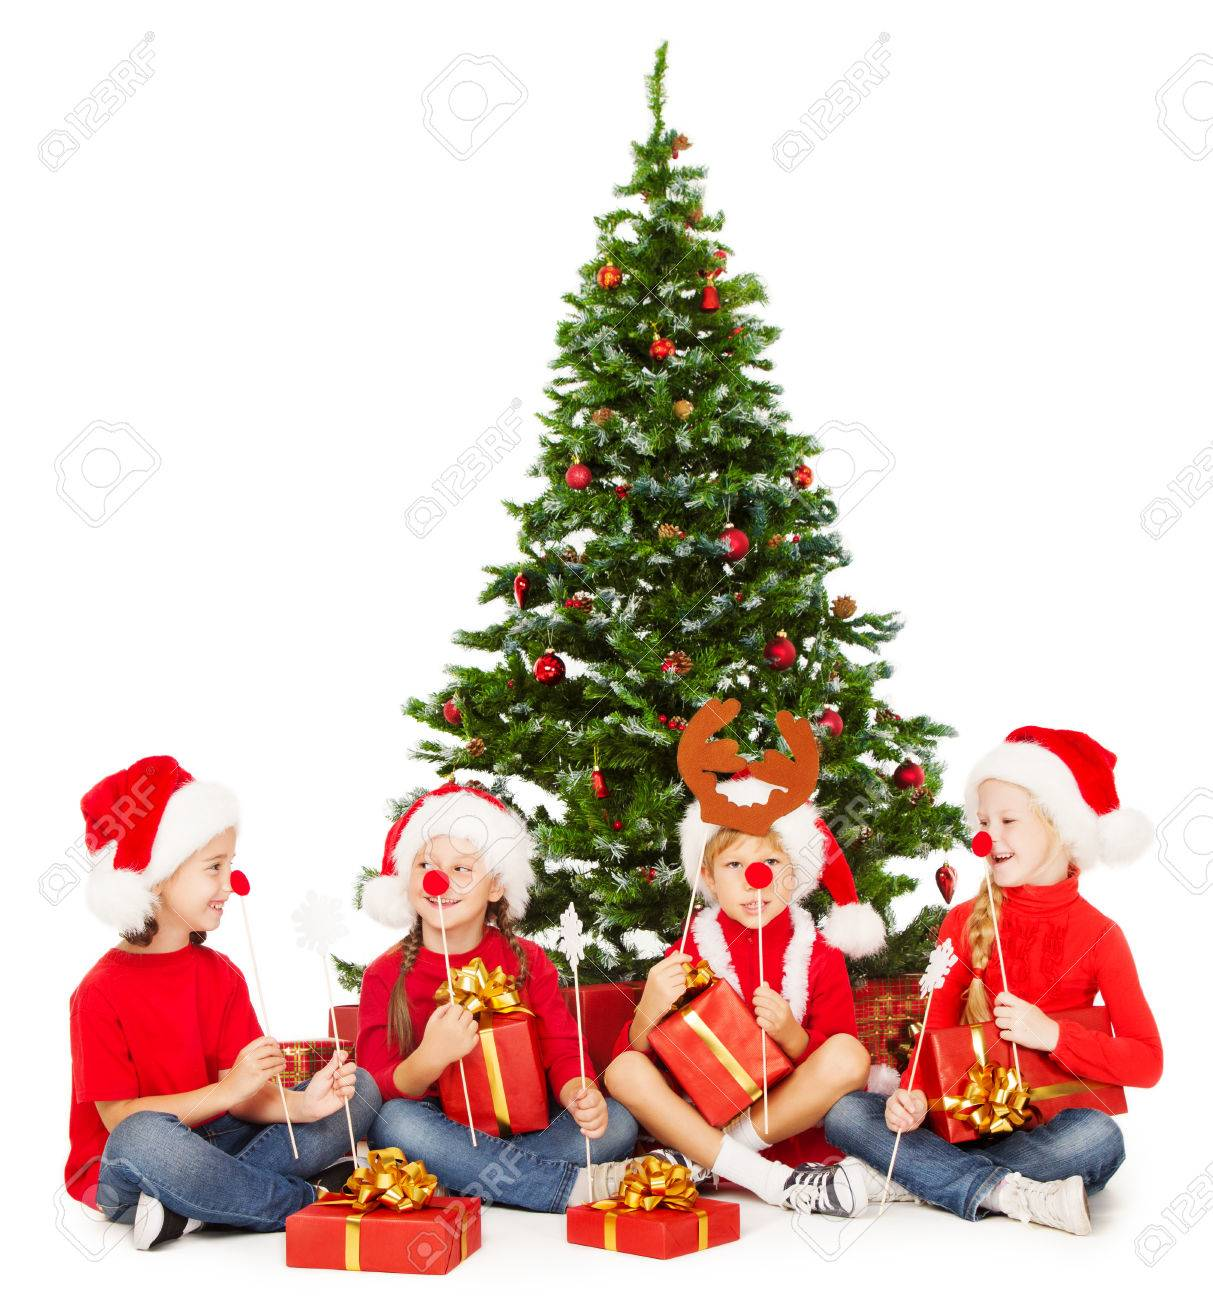 Christmas Kids In Santa Hat Playing Under Fir Tree New Year Presents And Accessories Stock